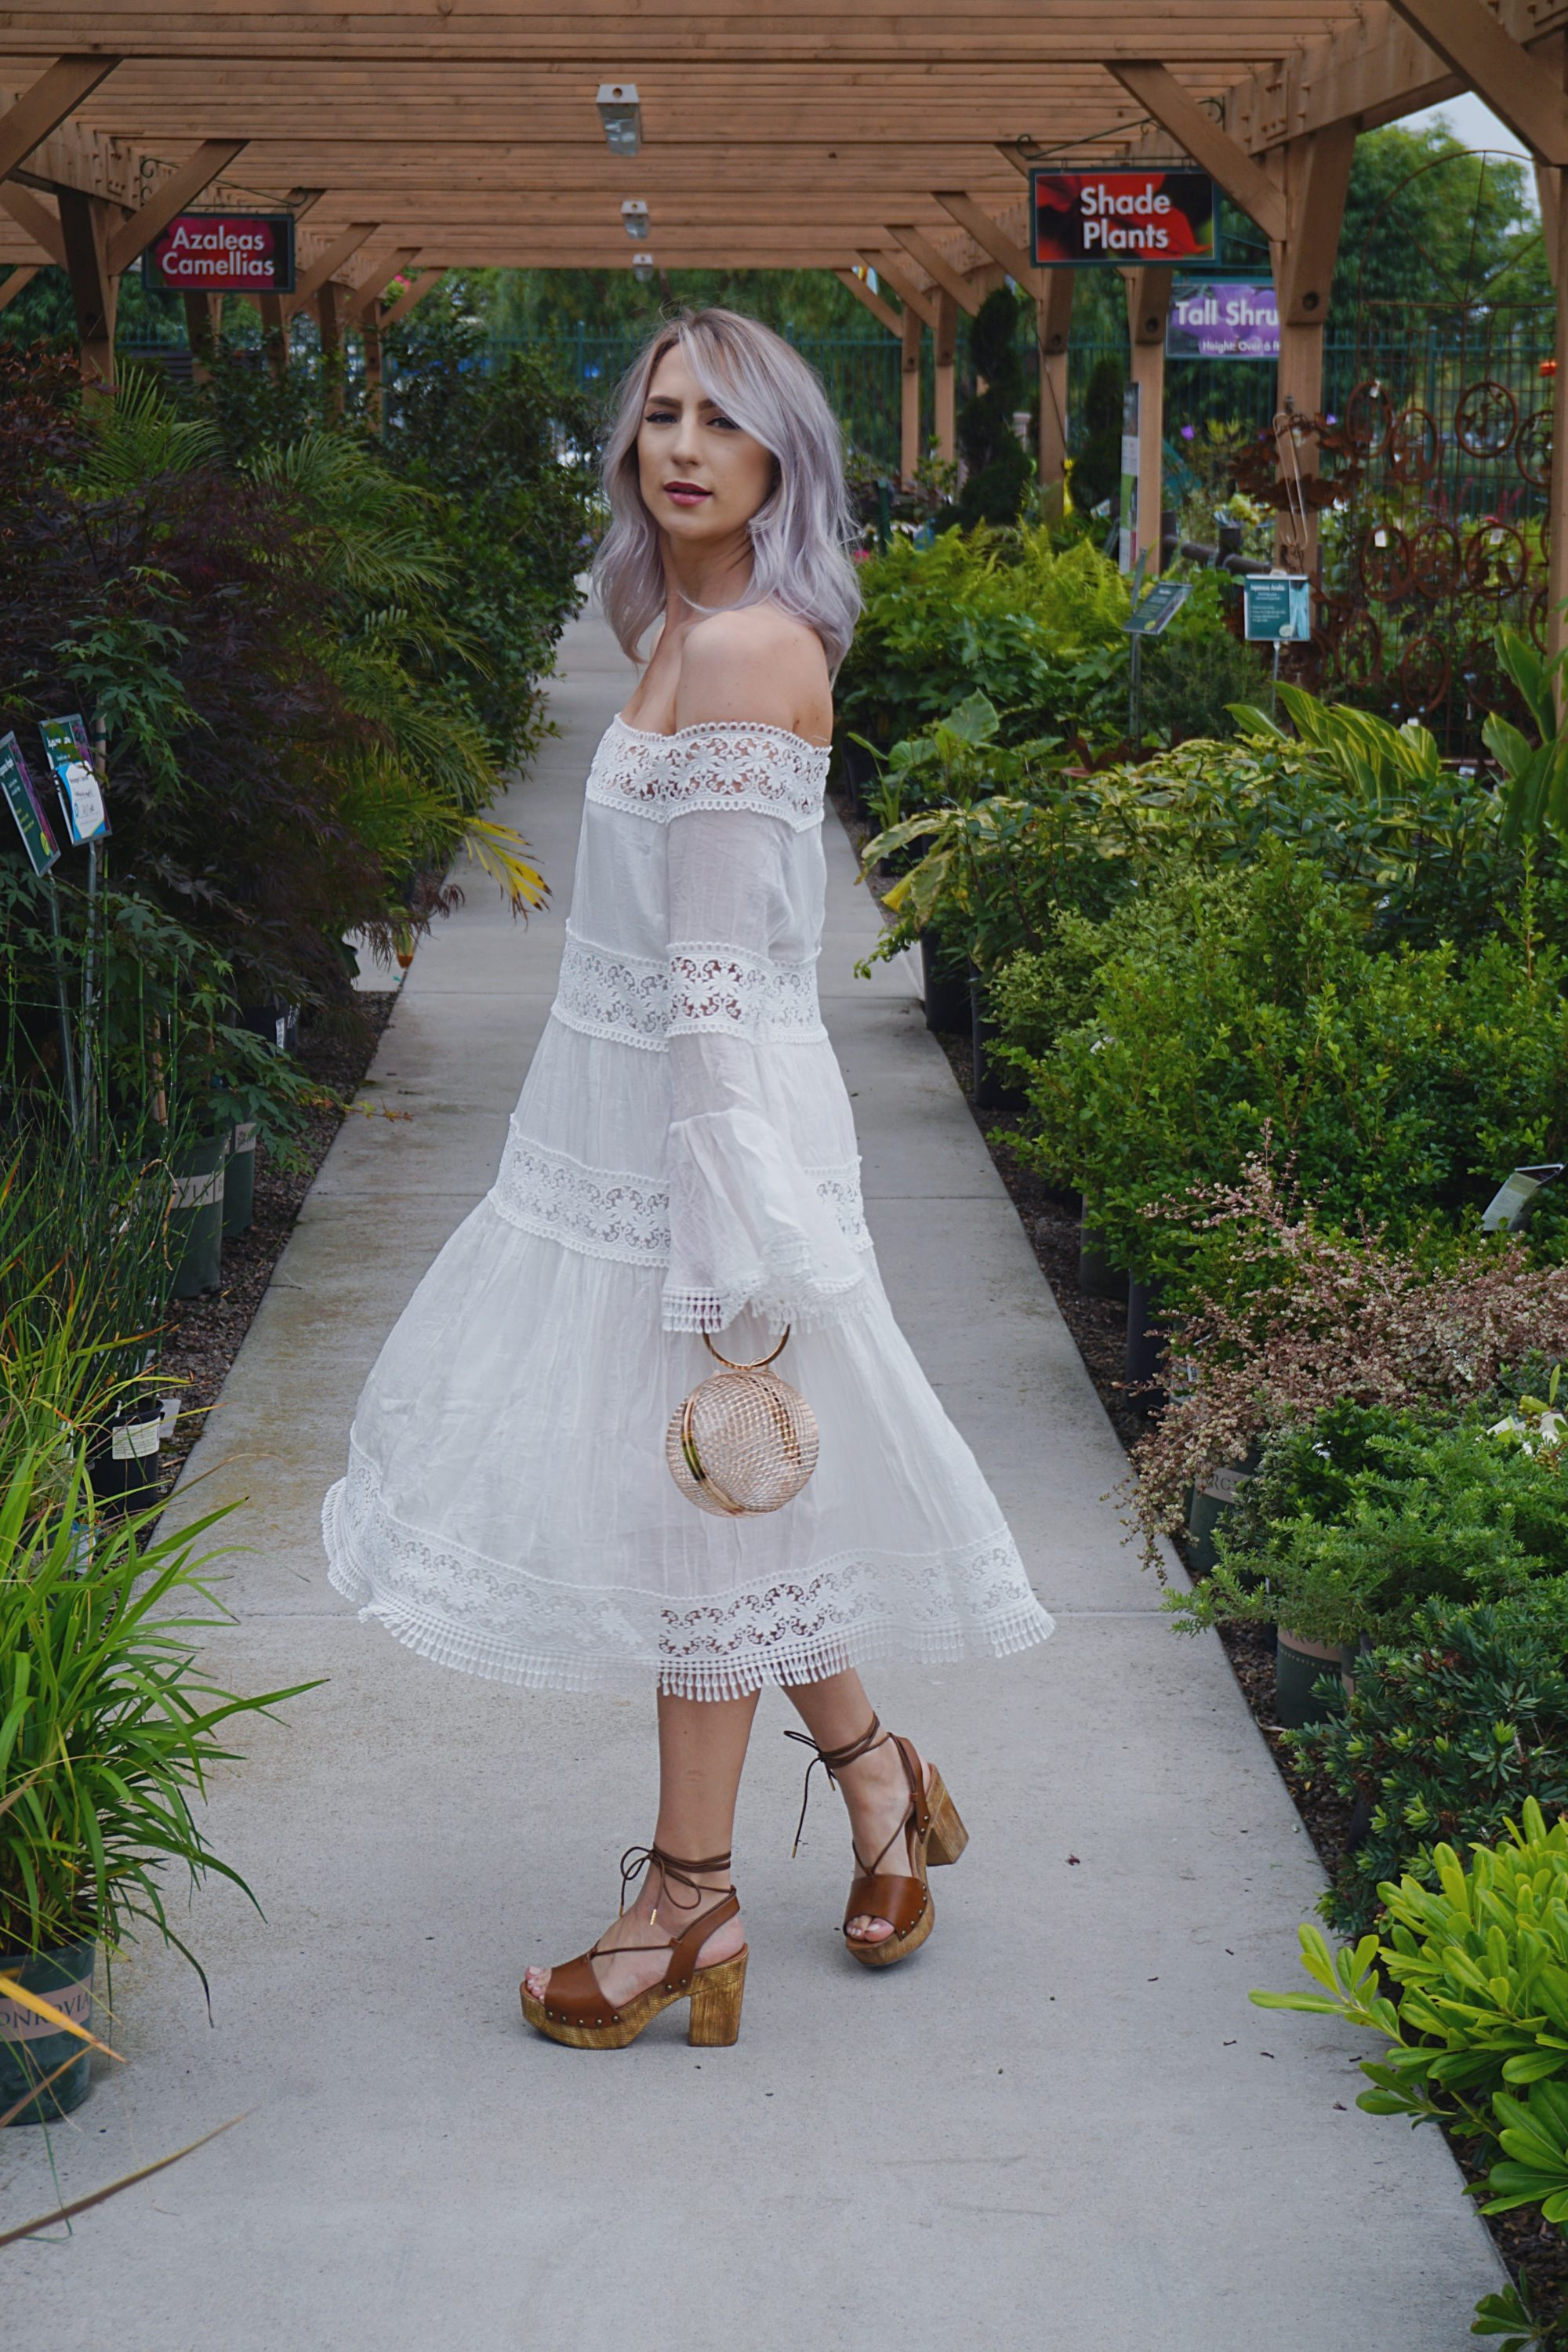 White Dresses & Platform Shoes